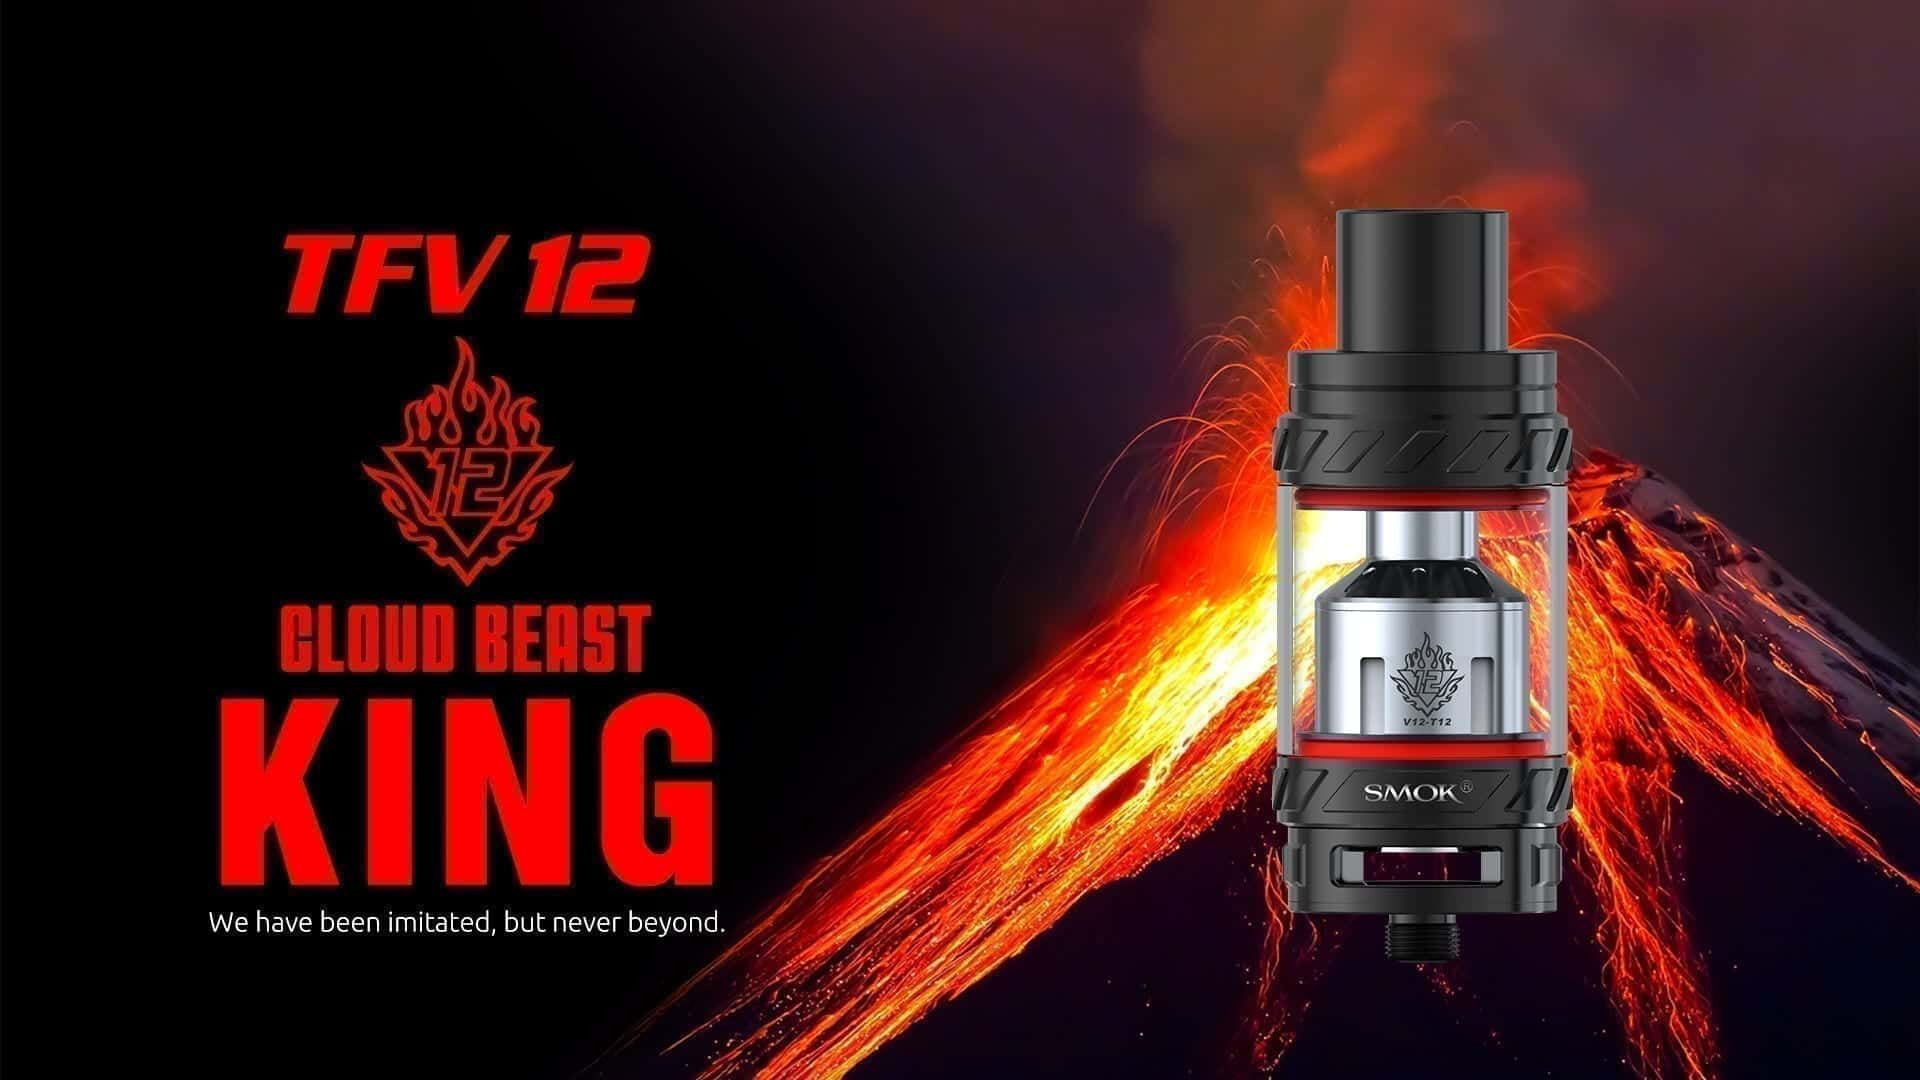 SMOK TFV12 Cloud Beast King featured image